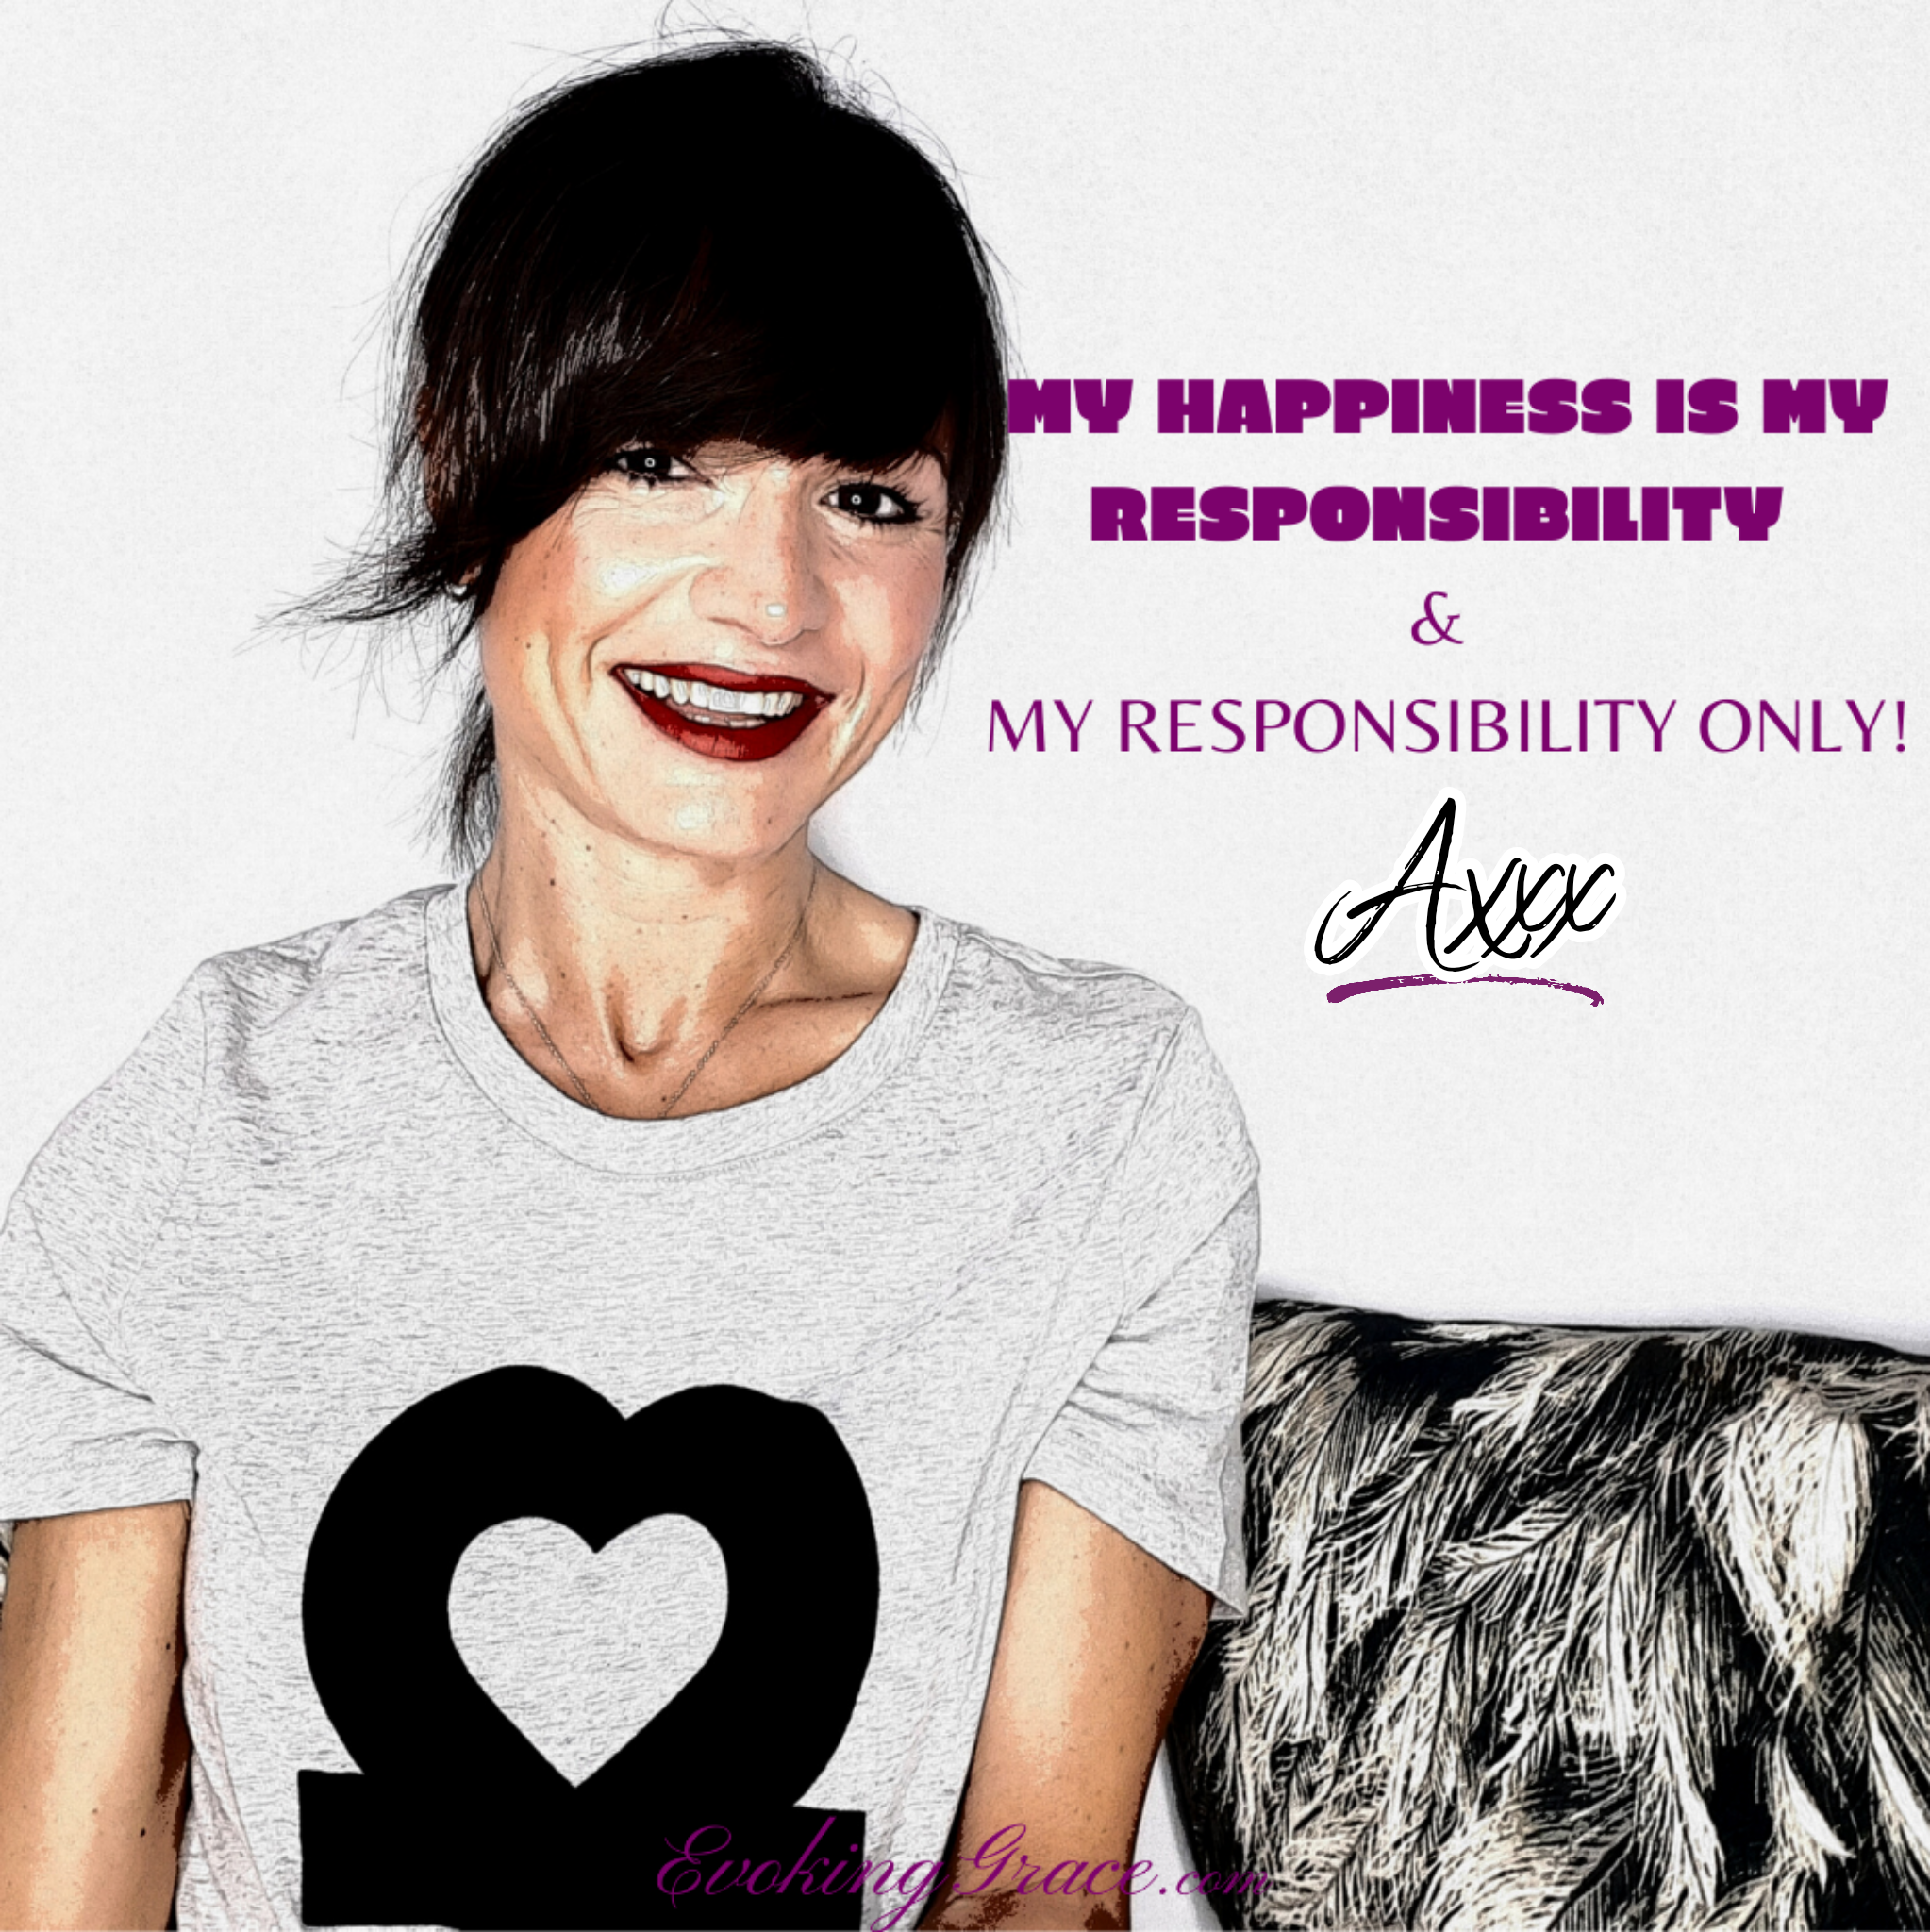 Why Our Happiness is Our Responsibility And Our Responsibility Only